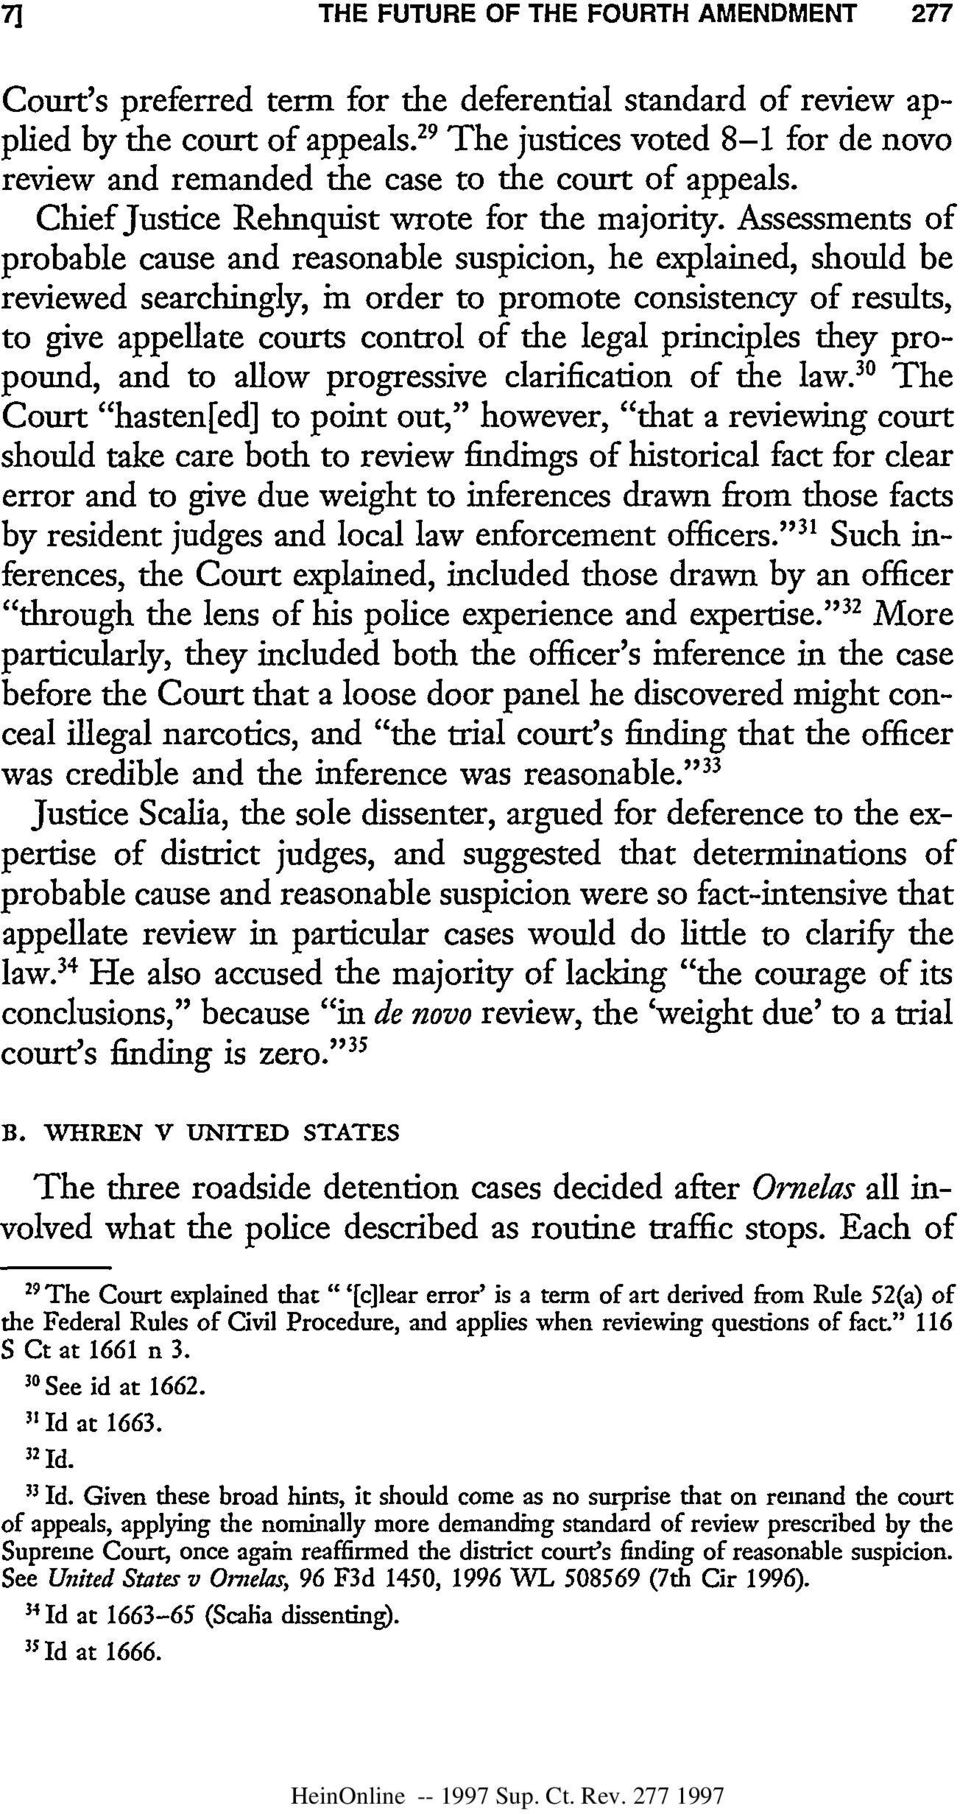 Assessments of probable cause and reasonable suspicion, he explained, should be reviewed searchingly, in order to promote consistency of results, to give appellate courts control of the legal